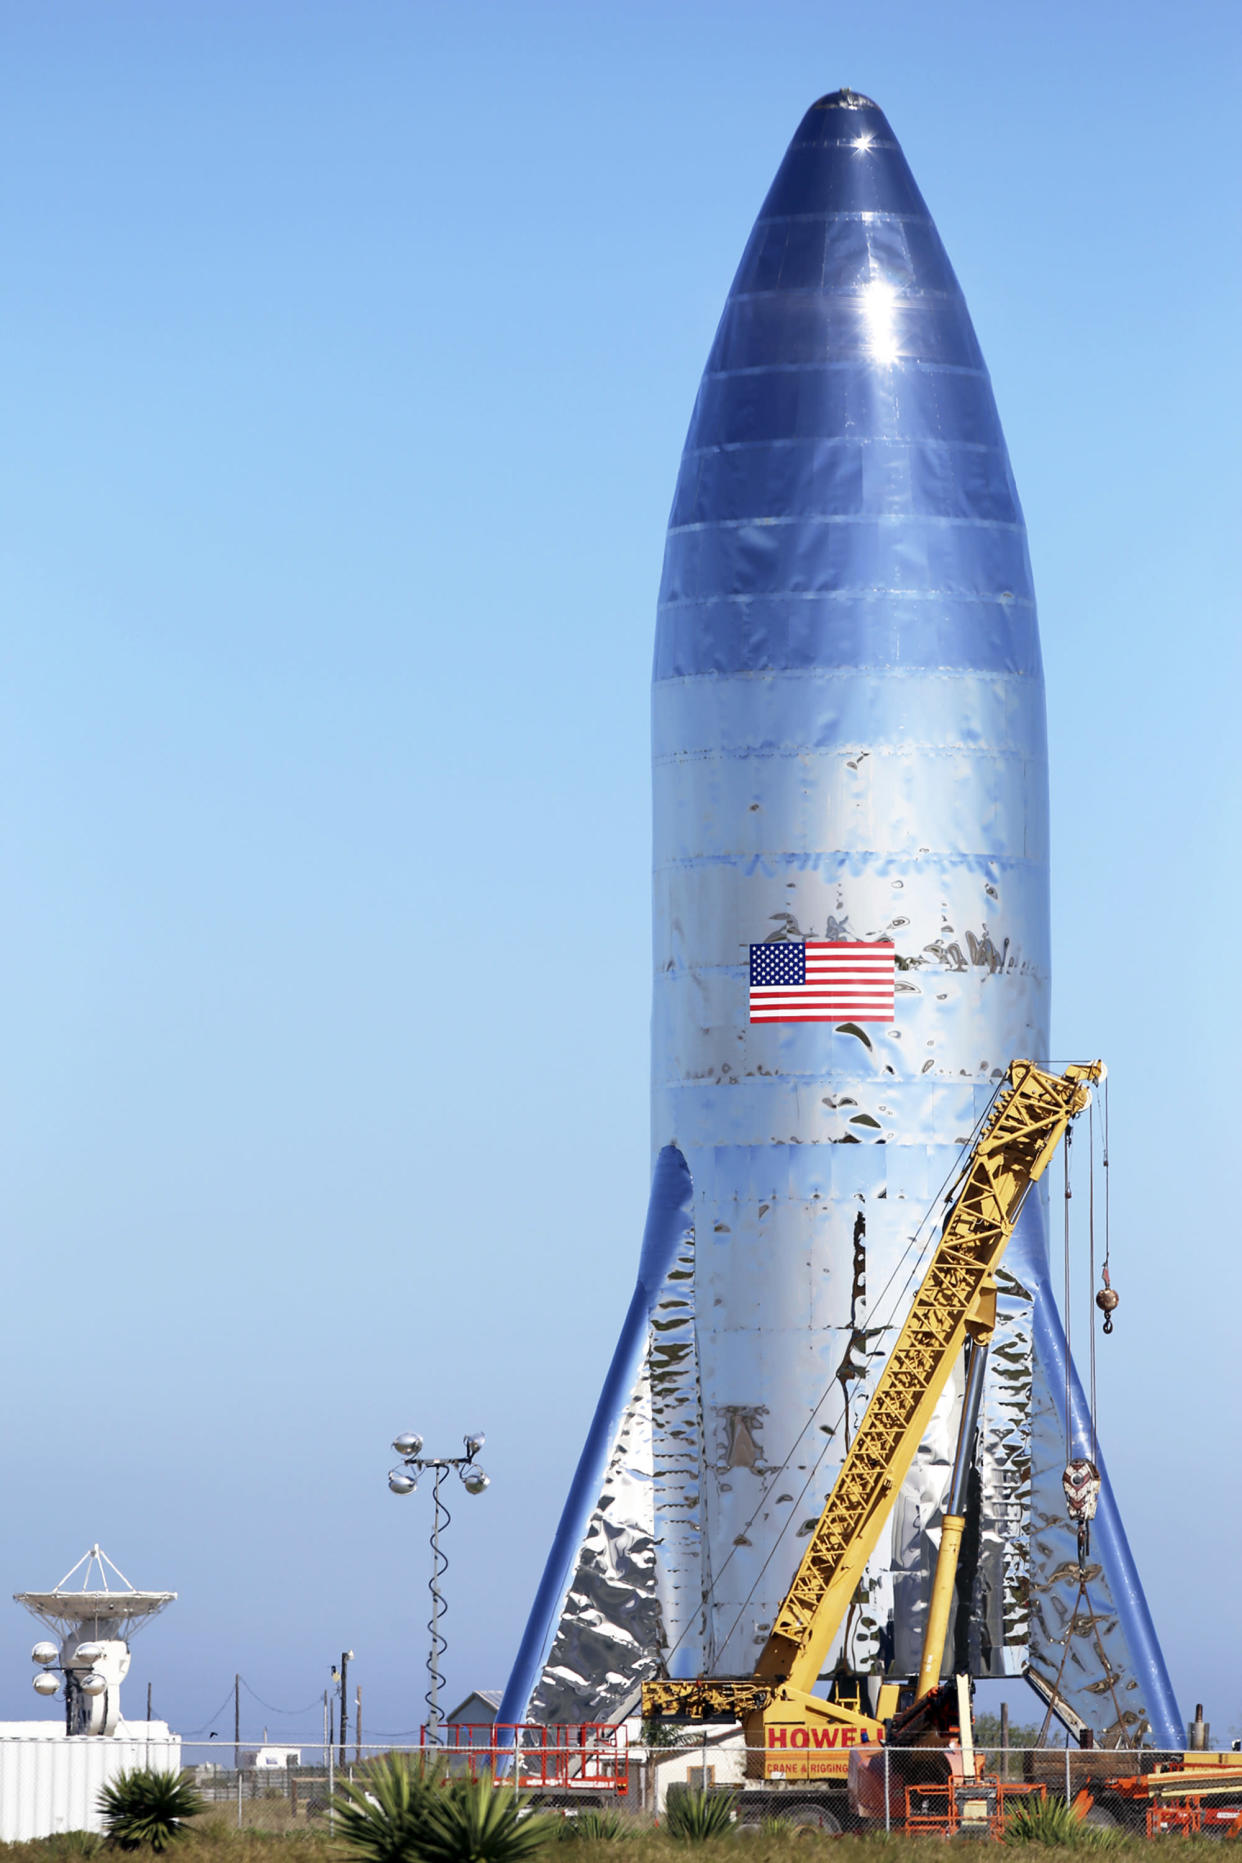 The SpaceX prototype Starship hopper stands at the Boca Chica Beach site in Texas